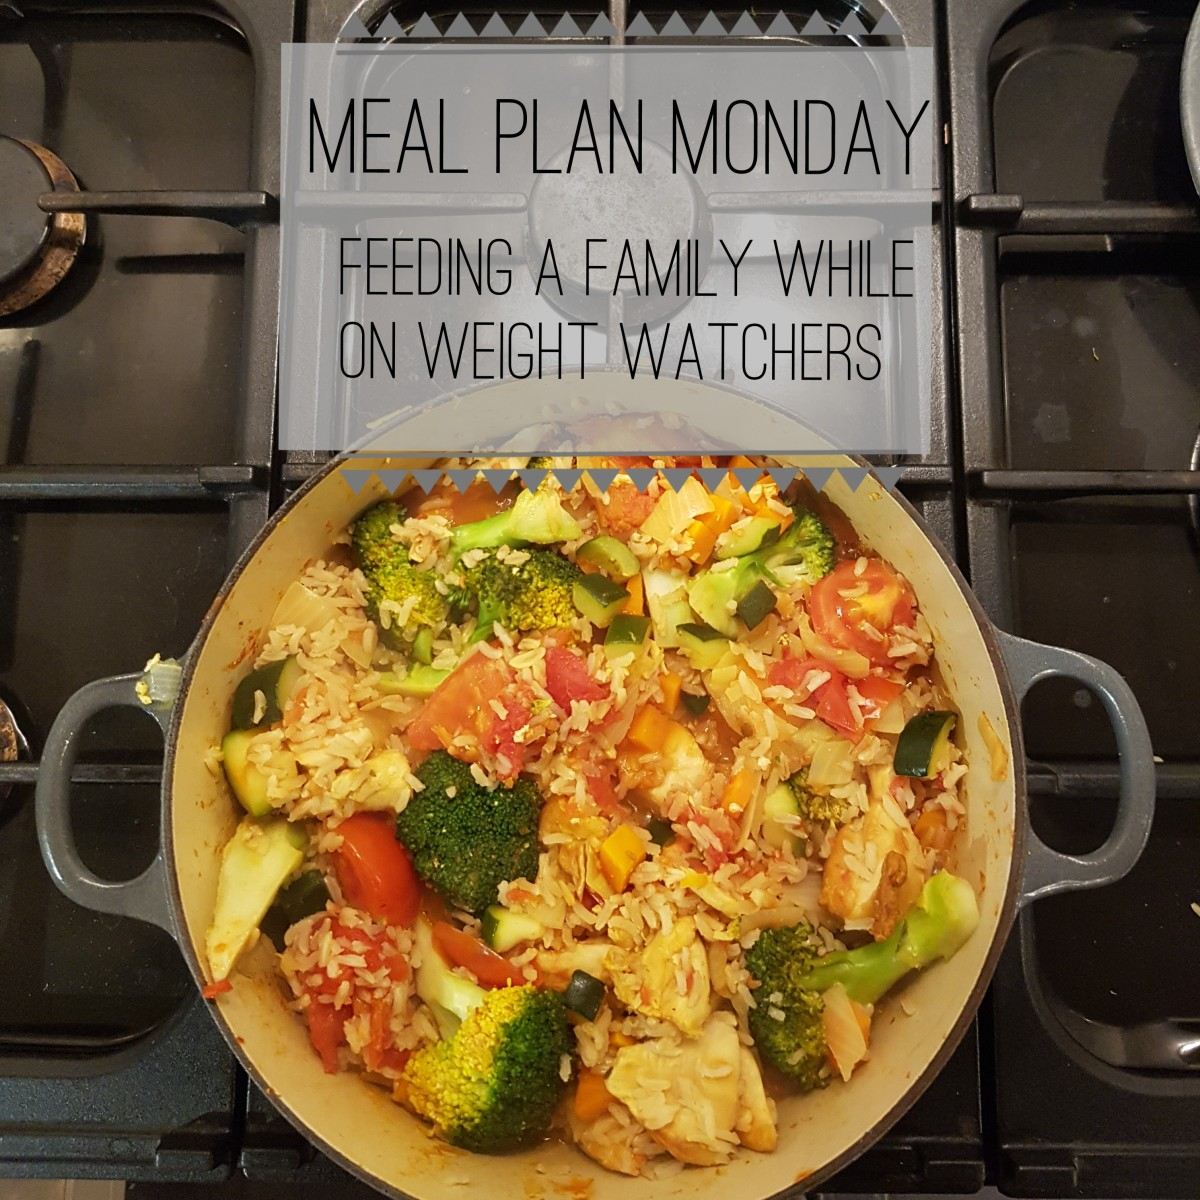 Meal Plan Monday - Getting Started On Weight Watchers